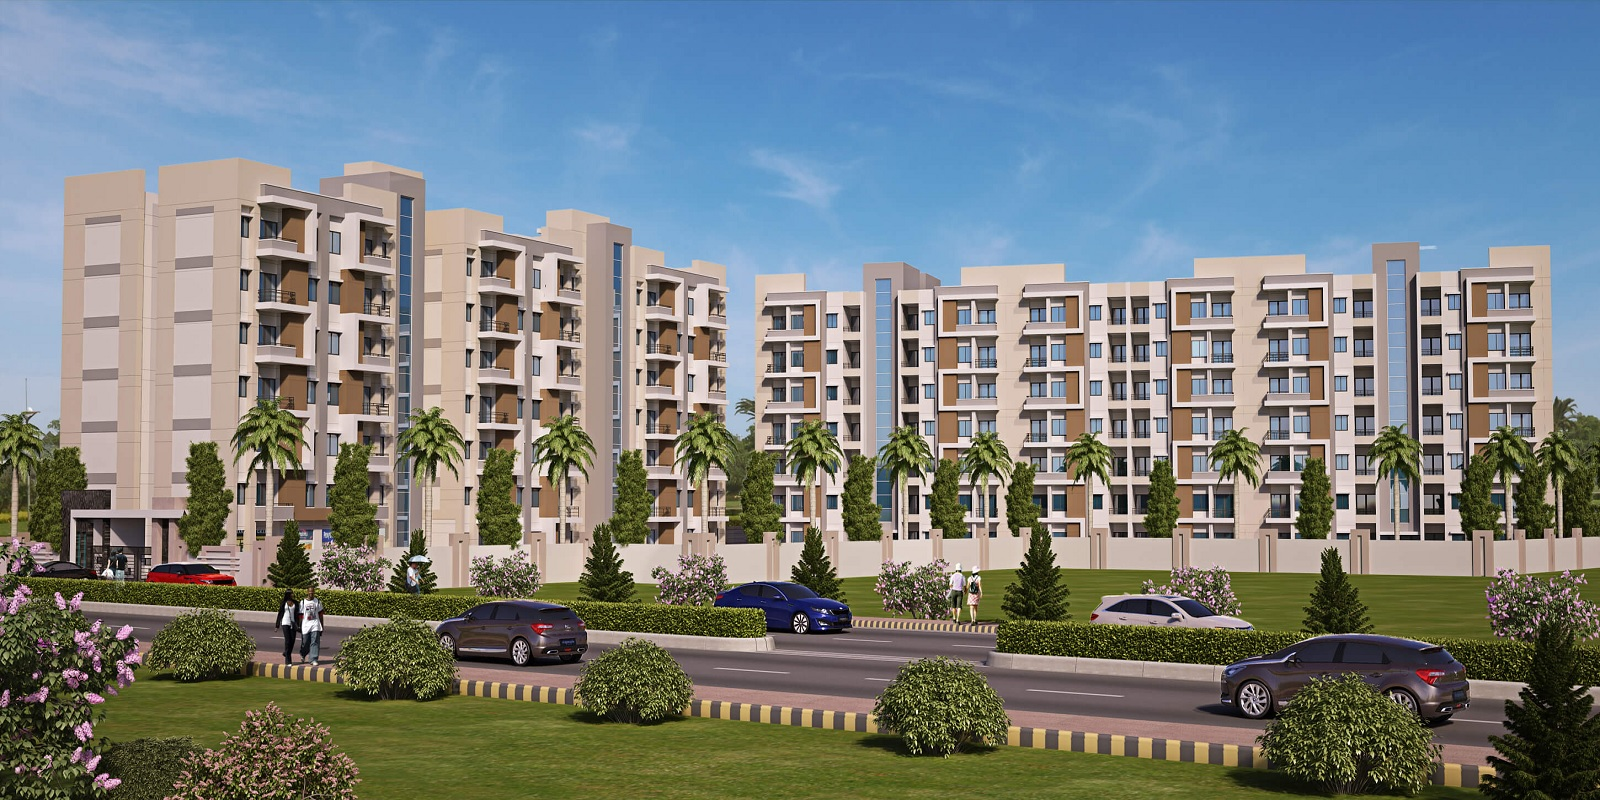 madhav residency project large image5